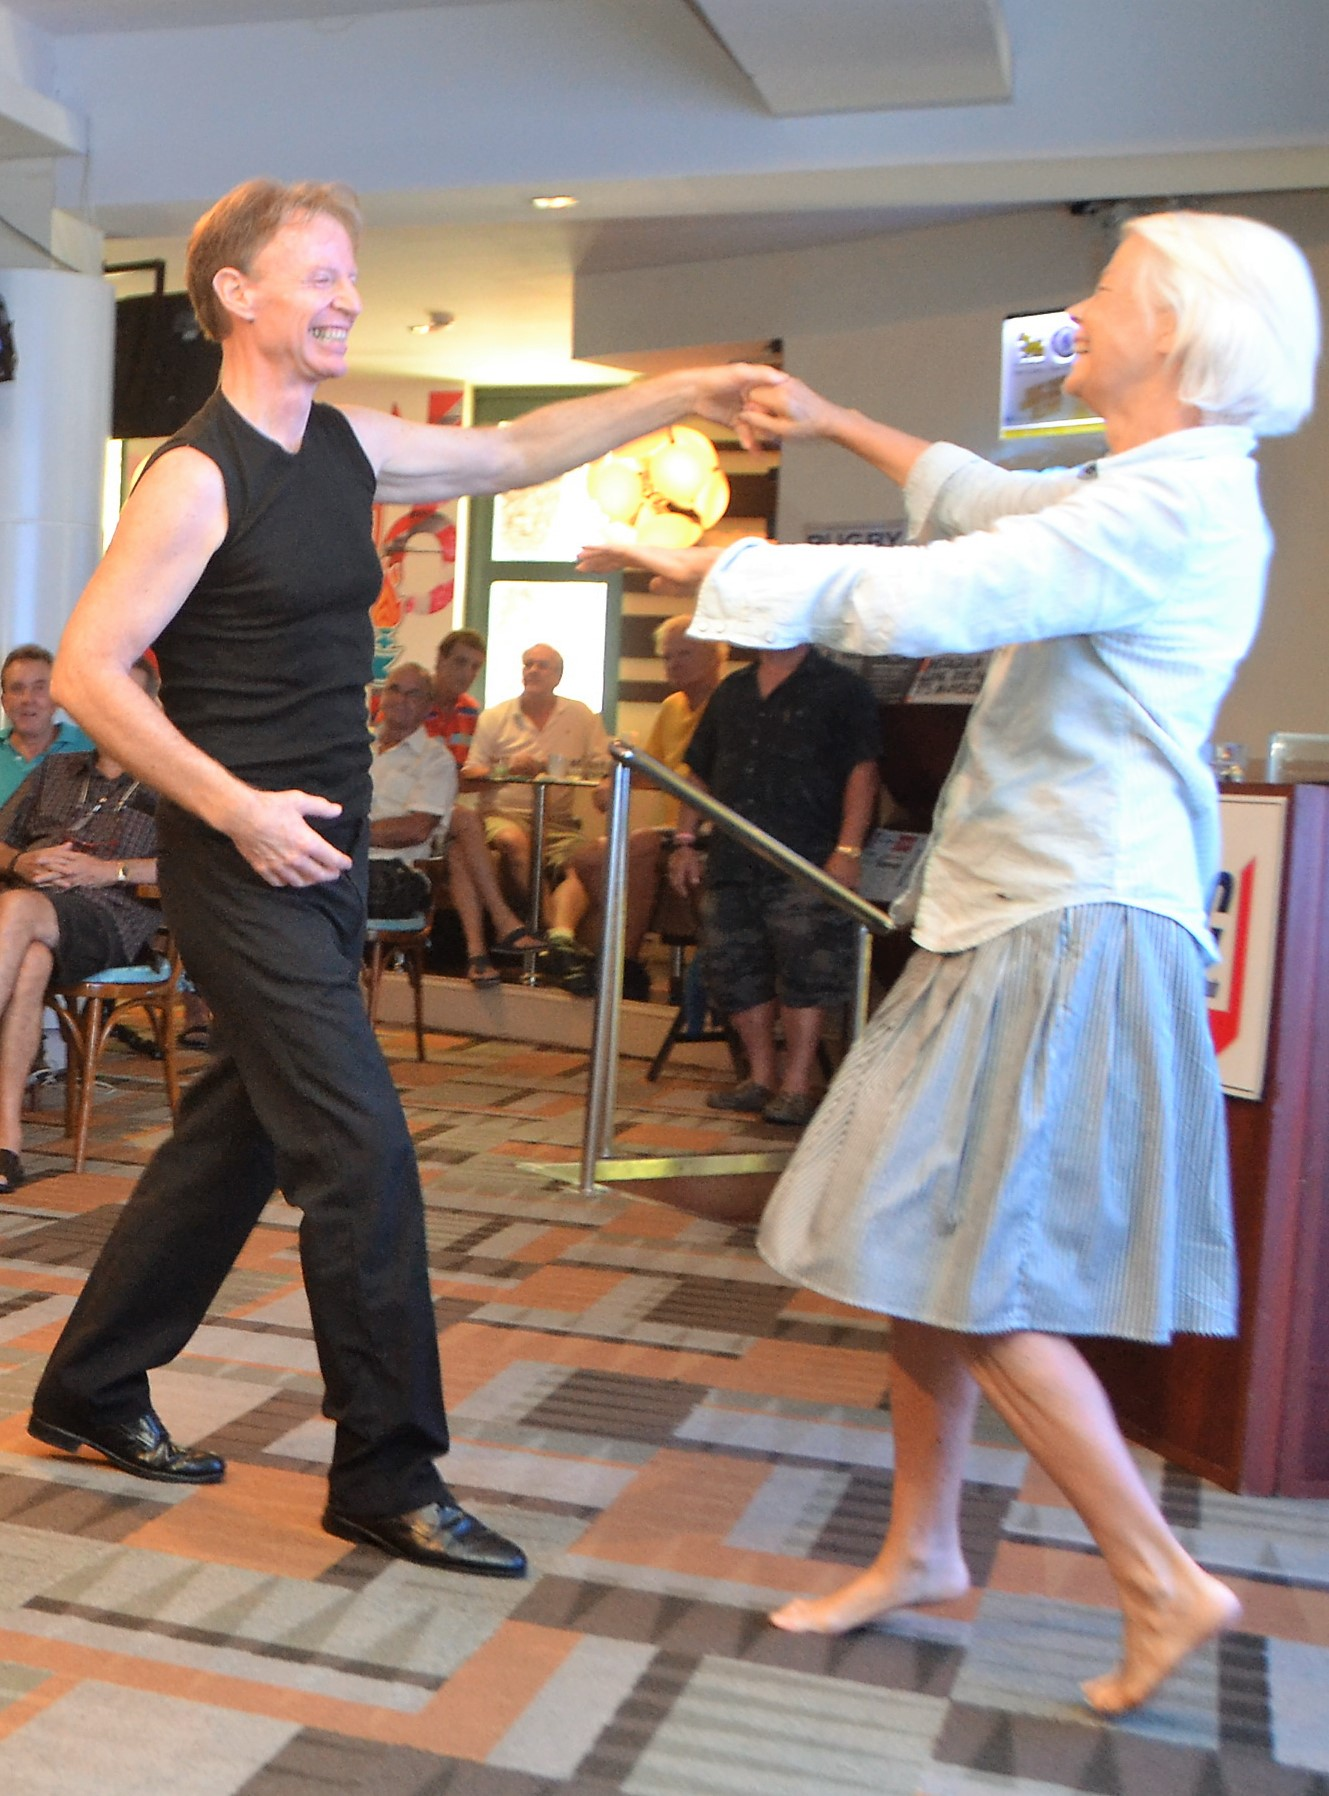 Ren Lexander closed his presentation by asking a woman he didn't know to come up and dance with him to the tune of Doris Day singing 'Perhaps Perhaps Perhaps', he and Arnica performed a charming improvised partner dance.